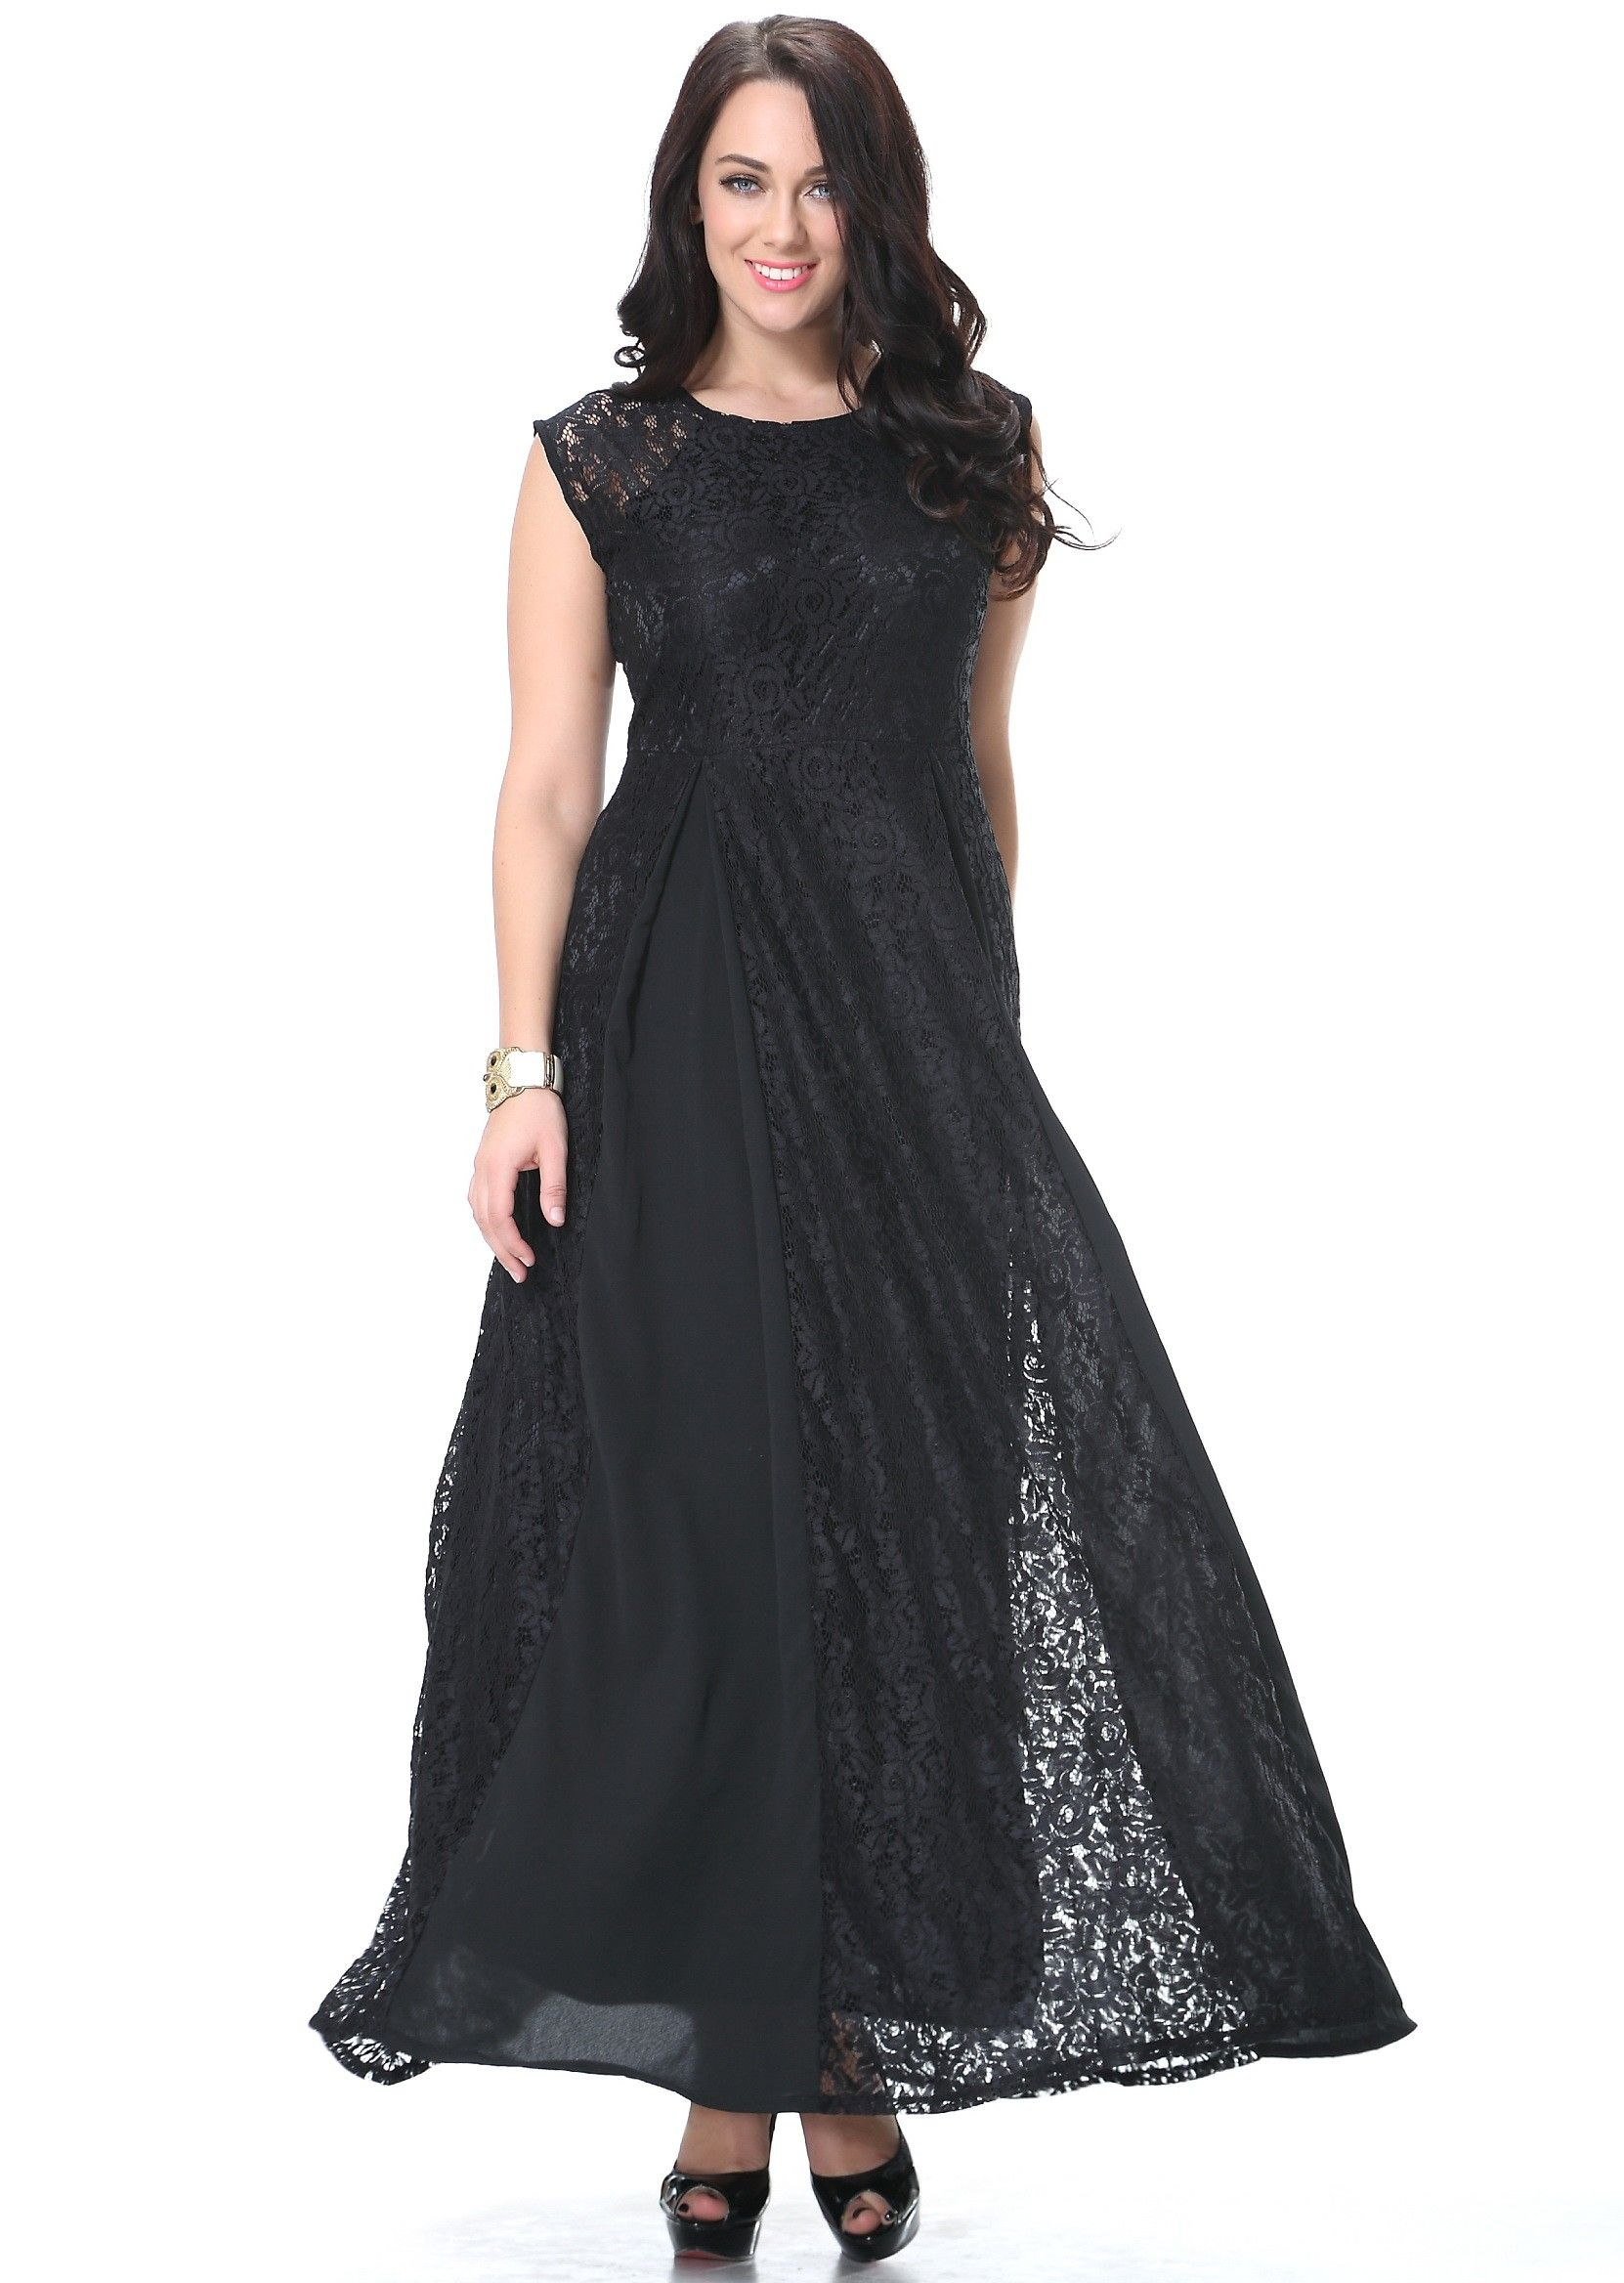 Plus size black lace joint full skirt summer dress idreammart